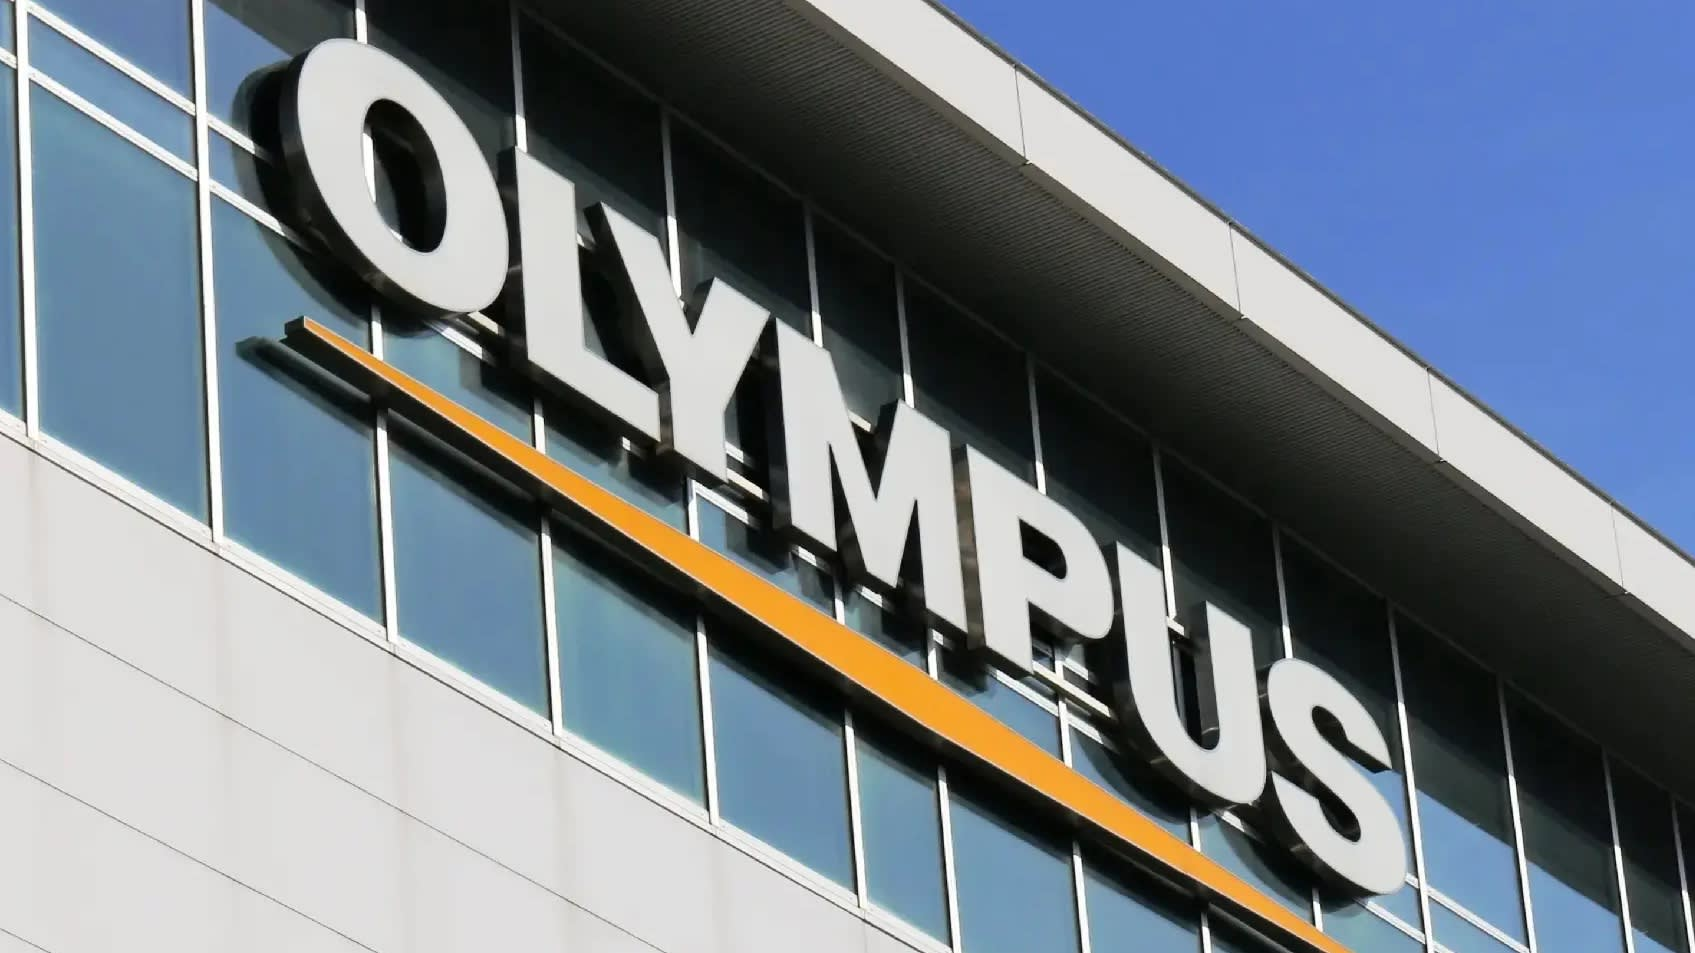 Facing pressure from US activist investor ValueAct, Olympus decided to invite one of its partners to the company's board as part of a governance reform effort.